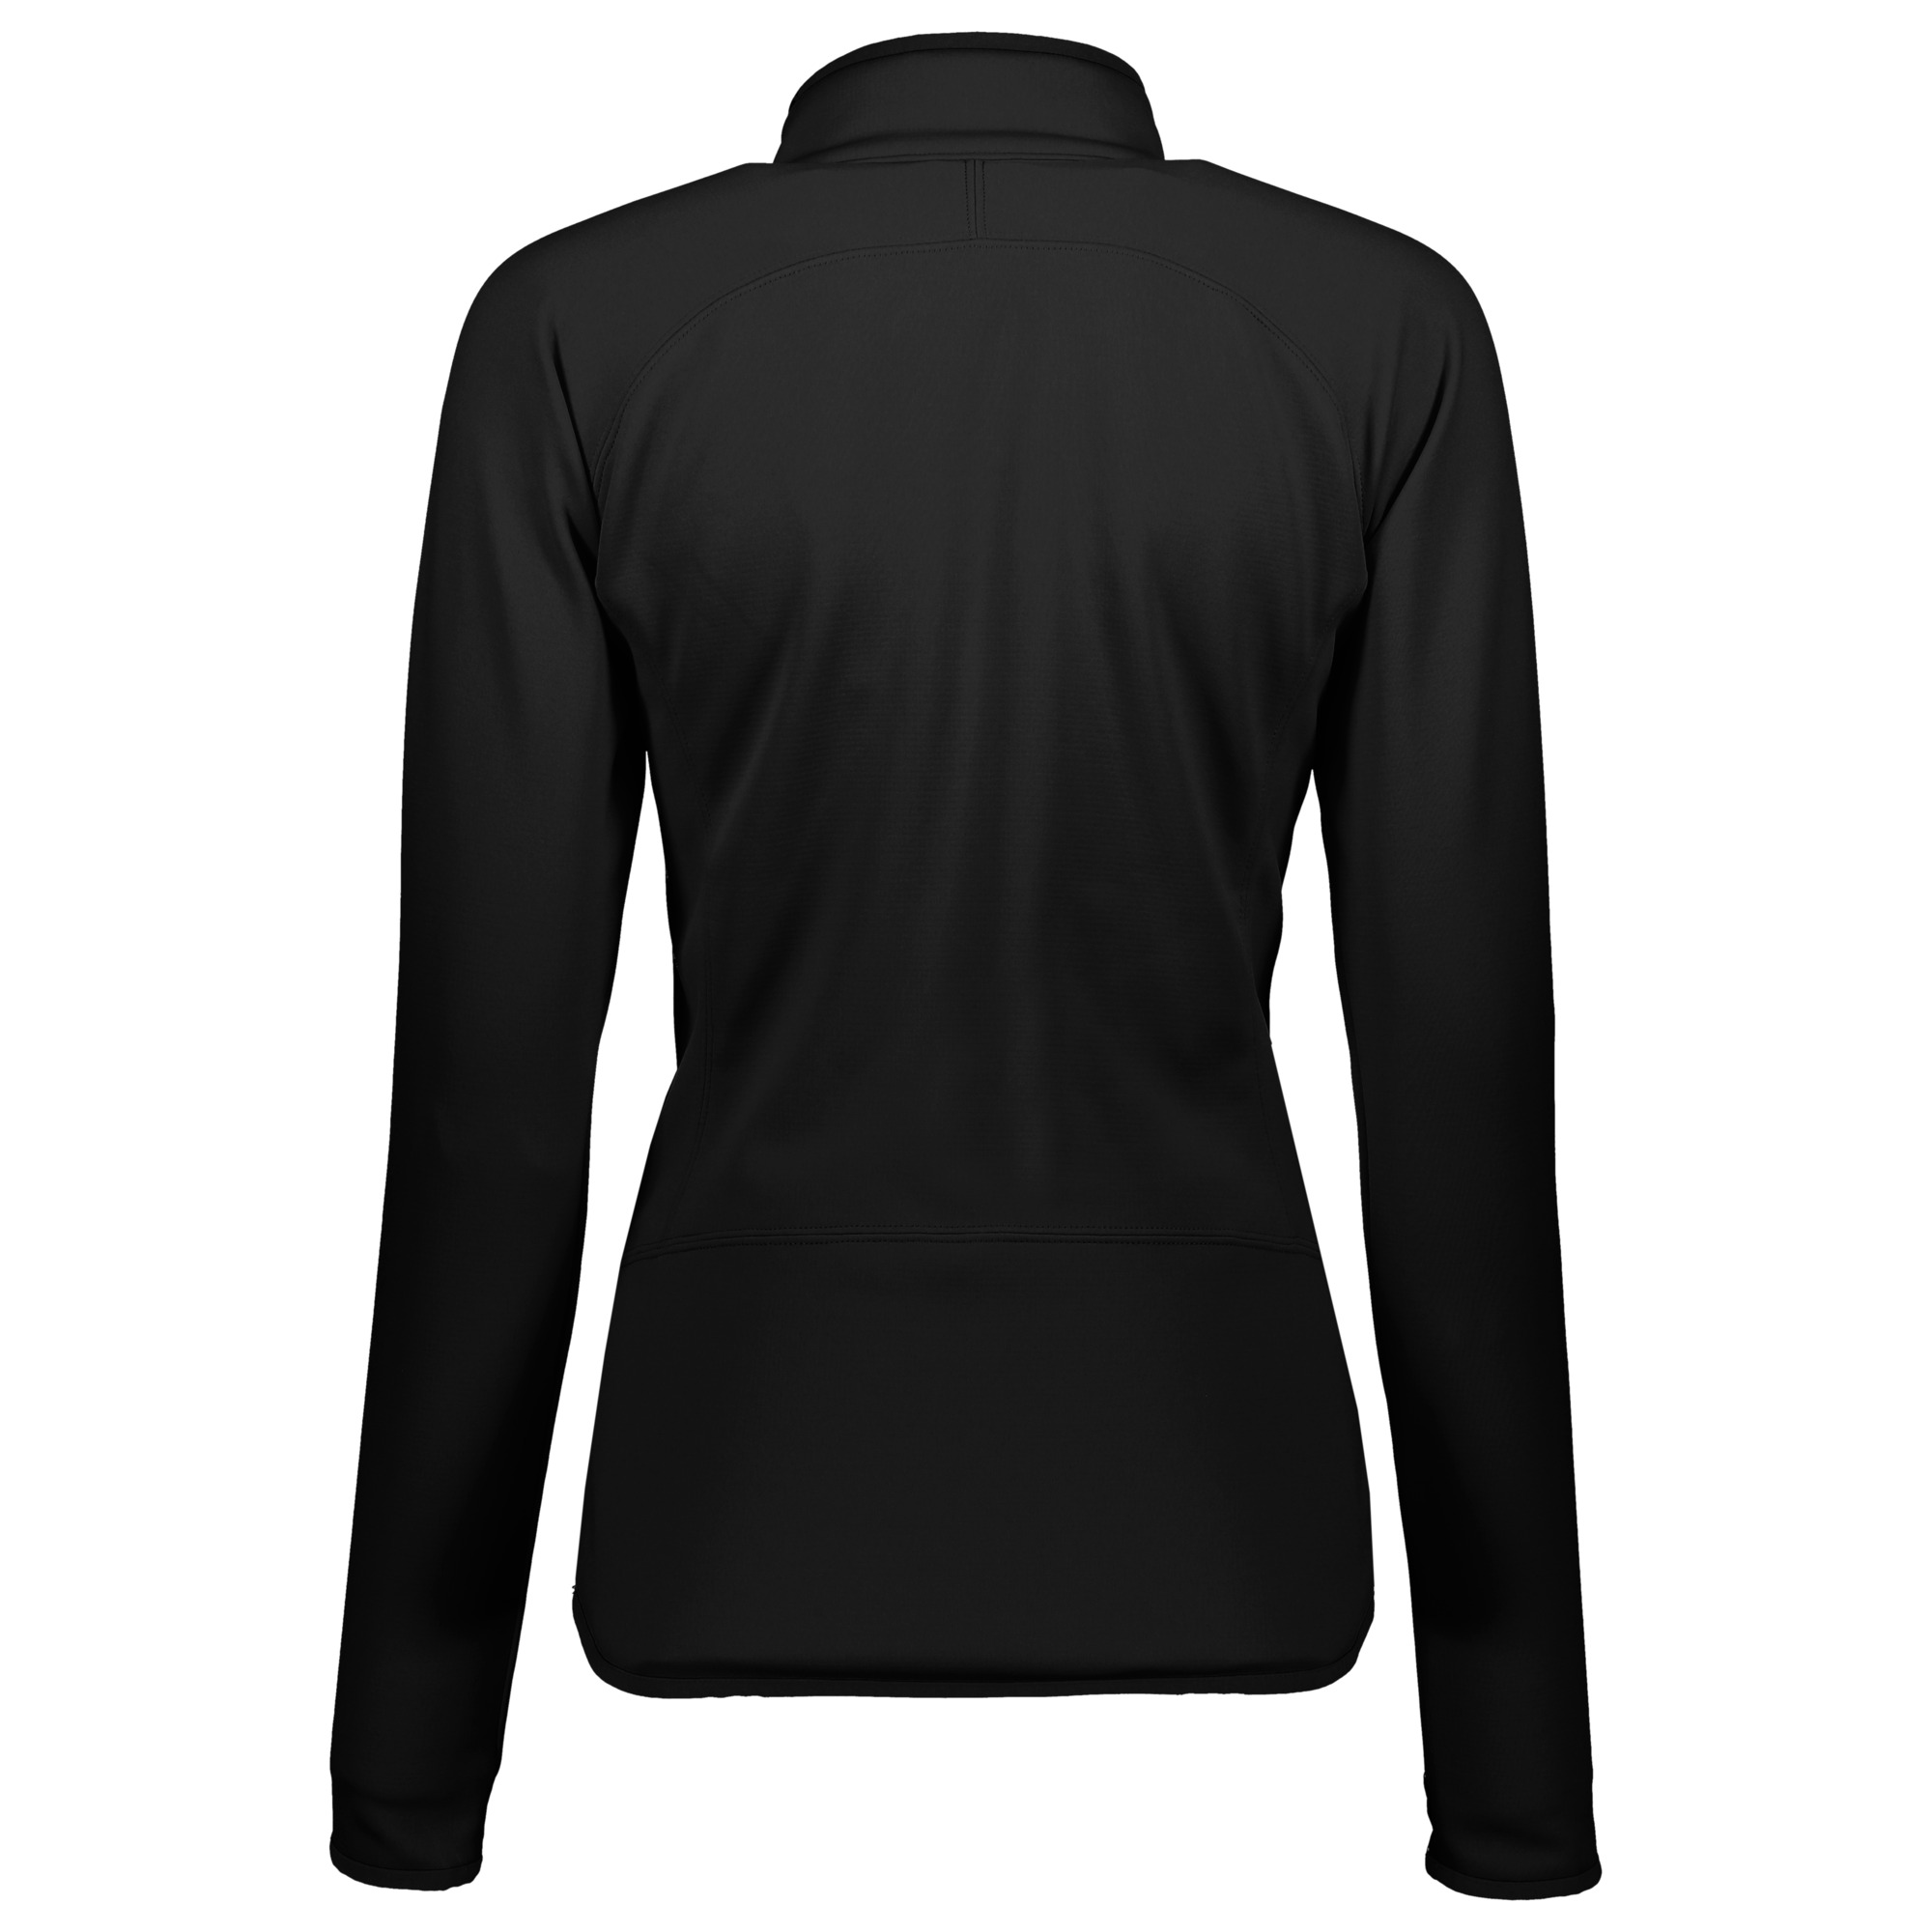 SCOTT Defined Tech Women's Jacket